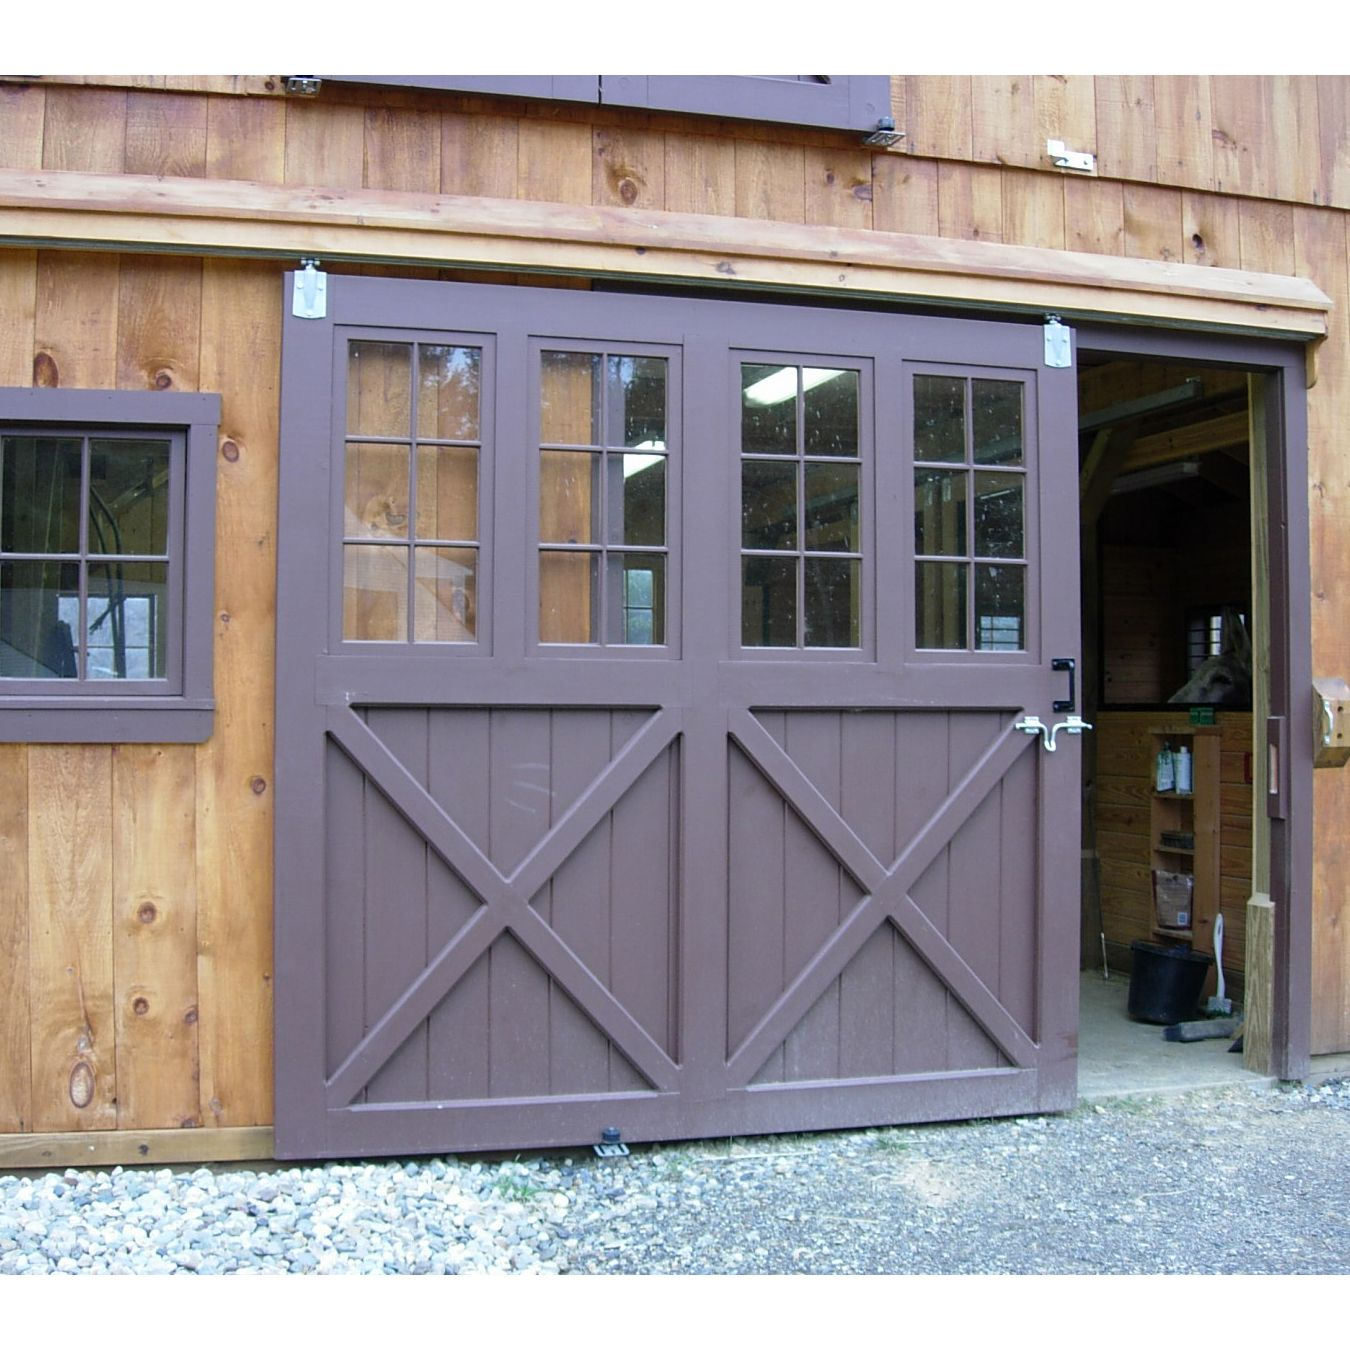 Sliding barn doorn with glass barn depot barn for Exterior sliding barn door hardware